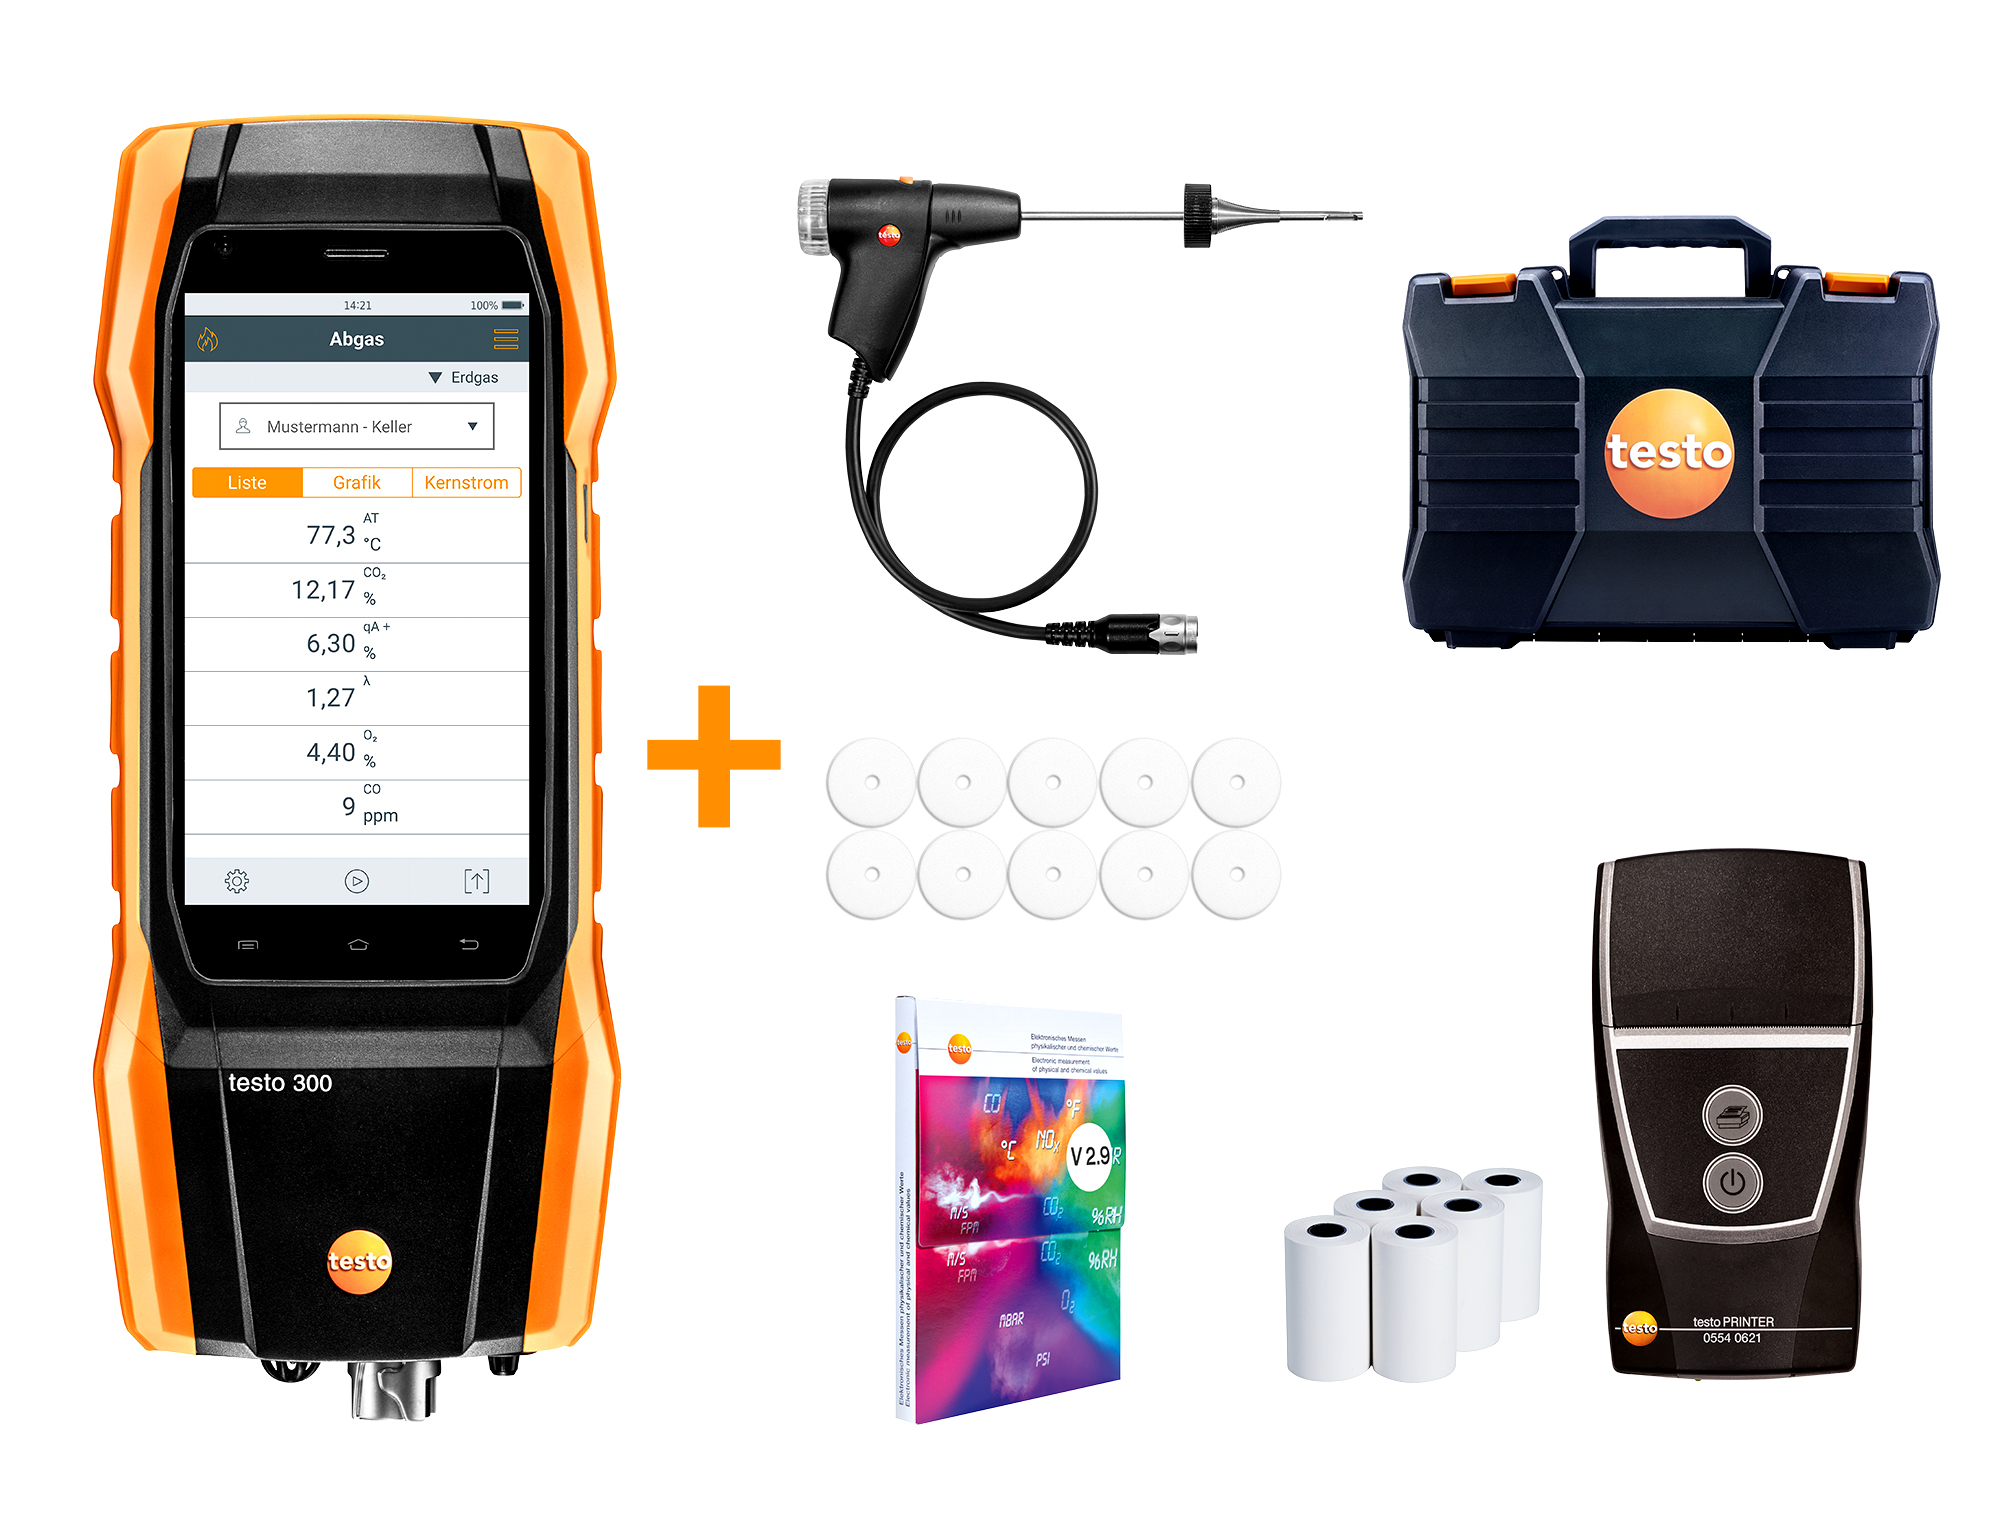 Testo 300 LL - Commercial / Industrial Combustion Analyzer with Printer and NOx Measurement